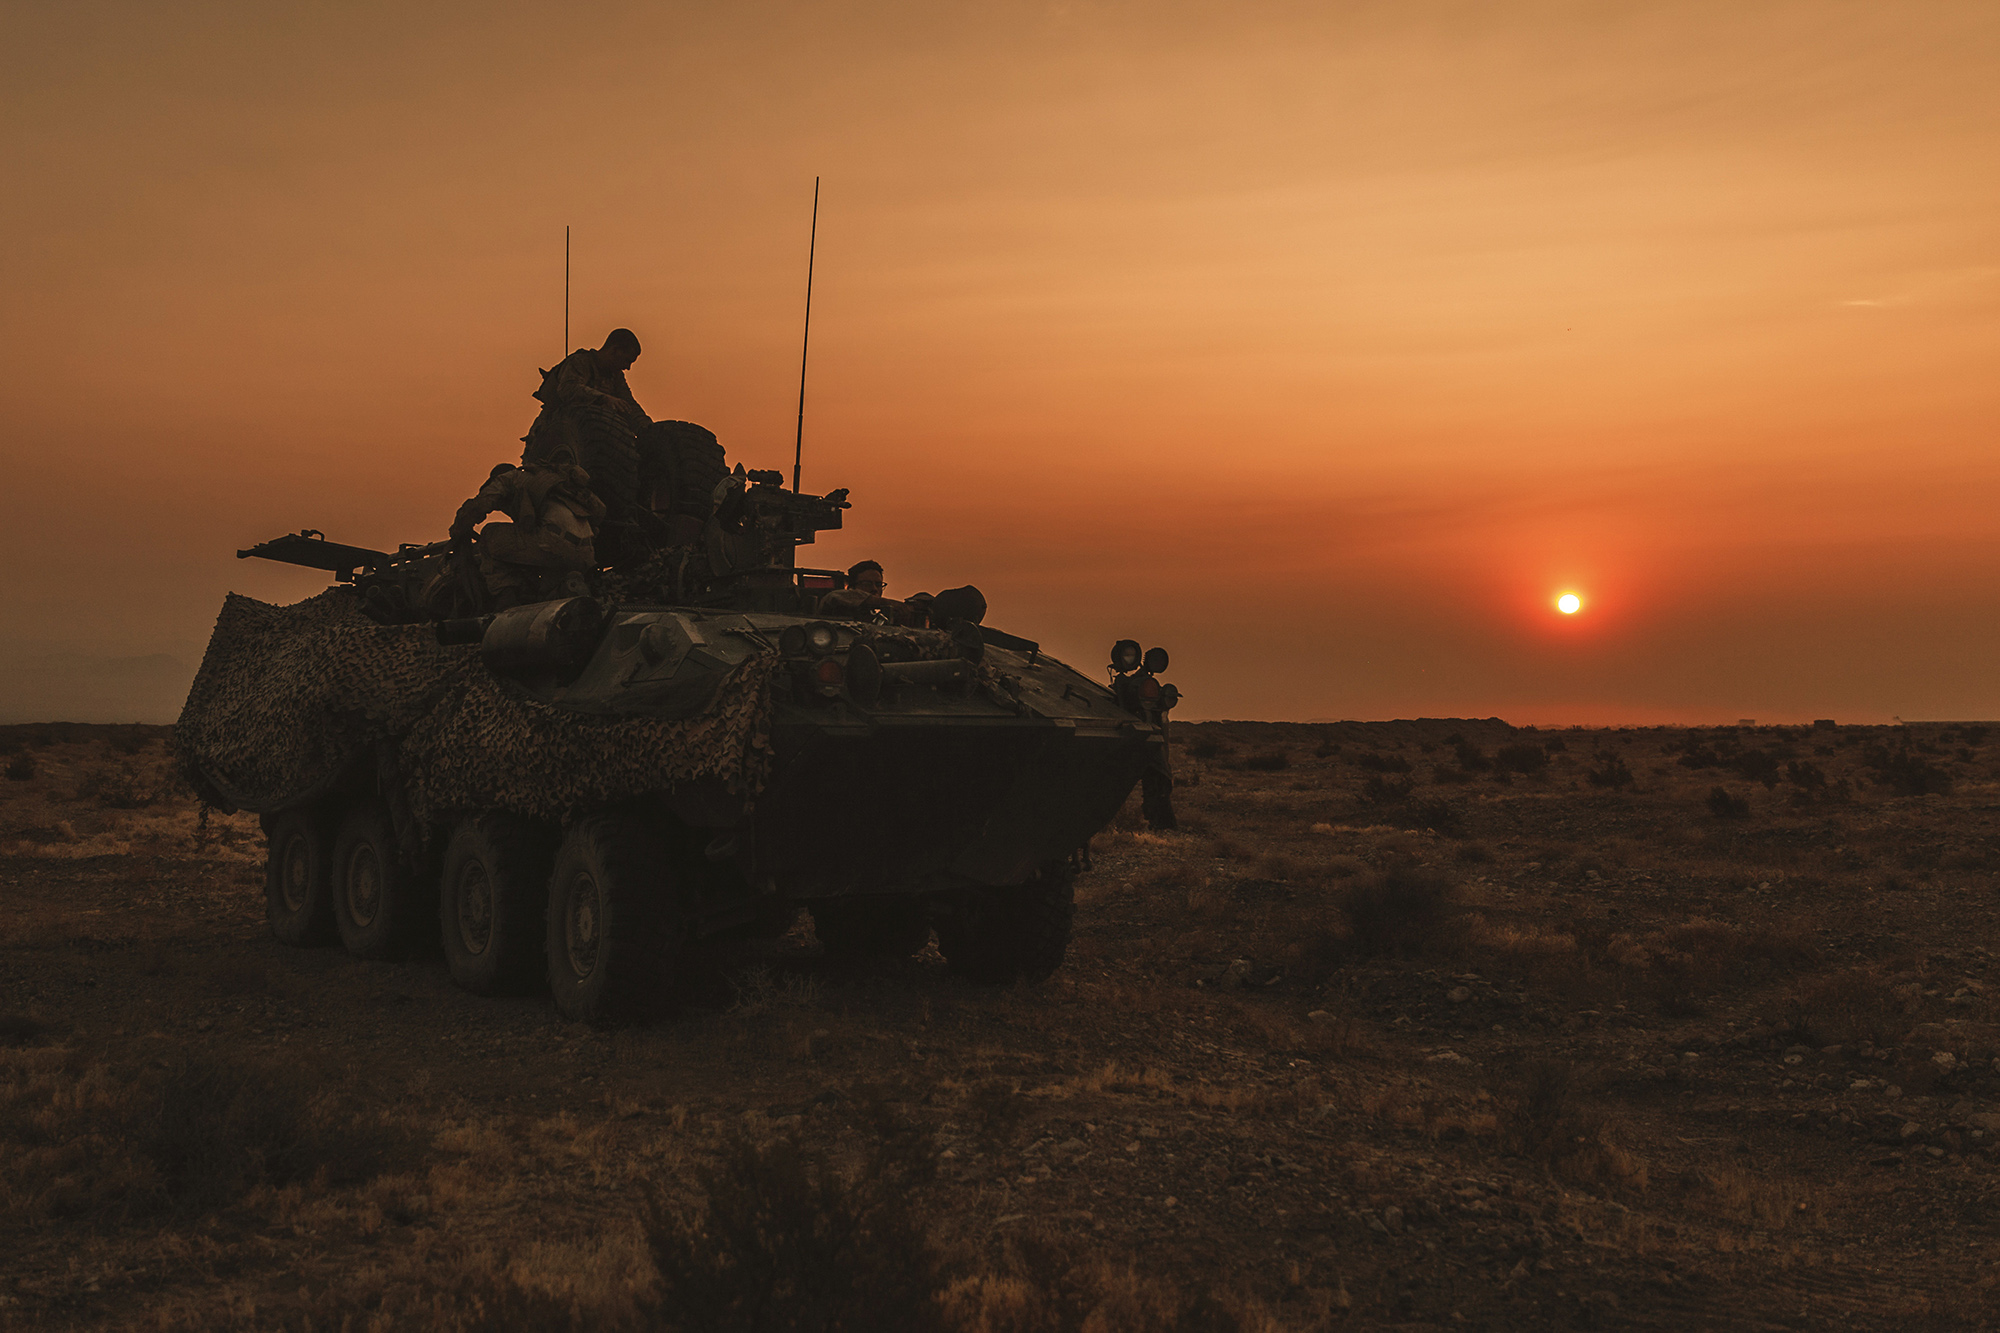 Marines operate a Light Armored Vehicle during a combat readiness evaluation at Marine Corps Air Ground Combat Center Twentynine Palms, Calif., Sept. 17, 2020. (Lance Cpl. William Redding/Marine Corps)